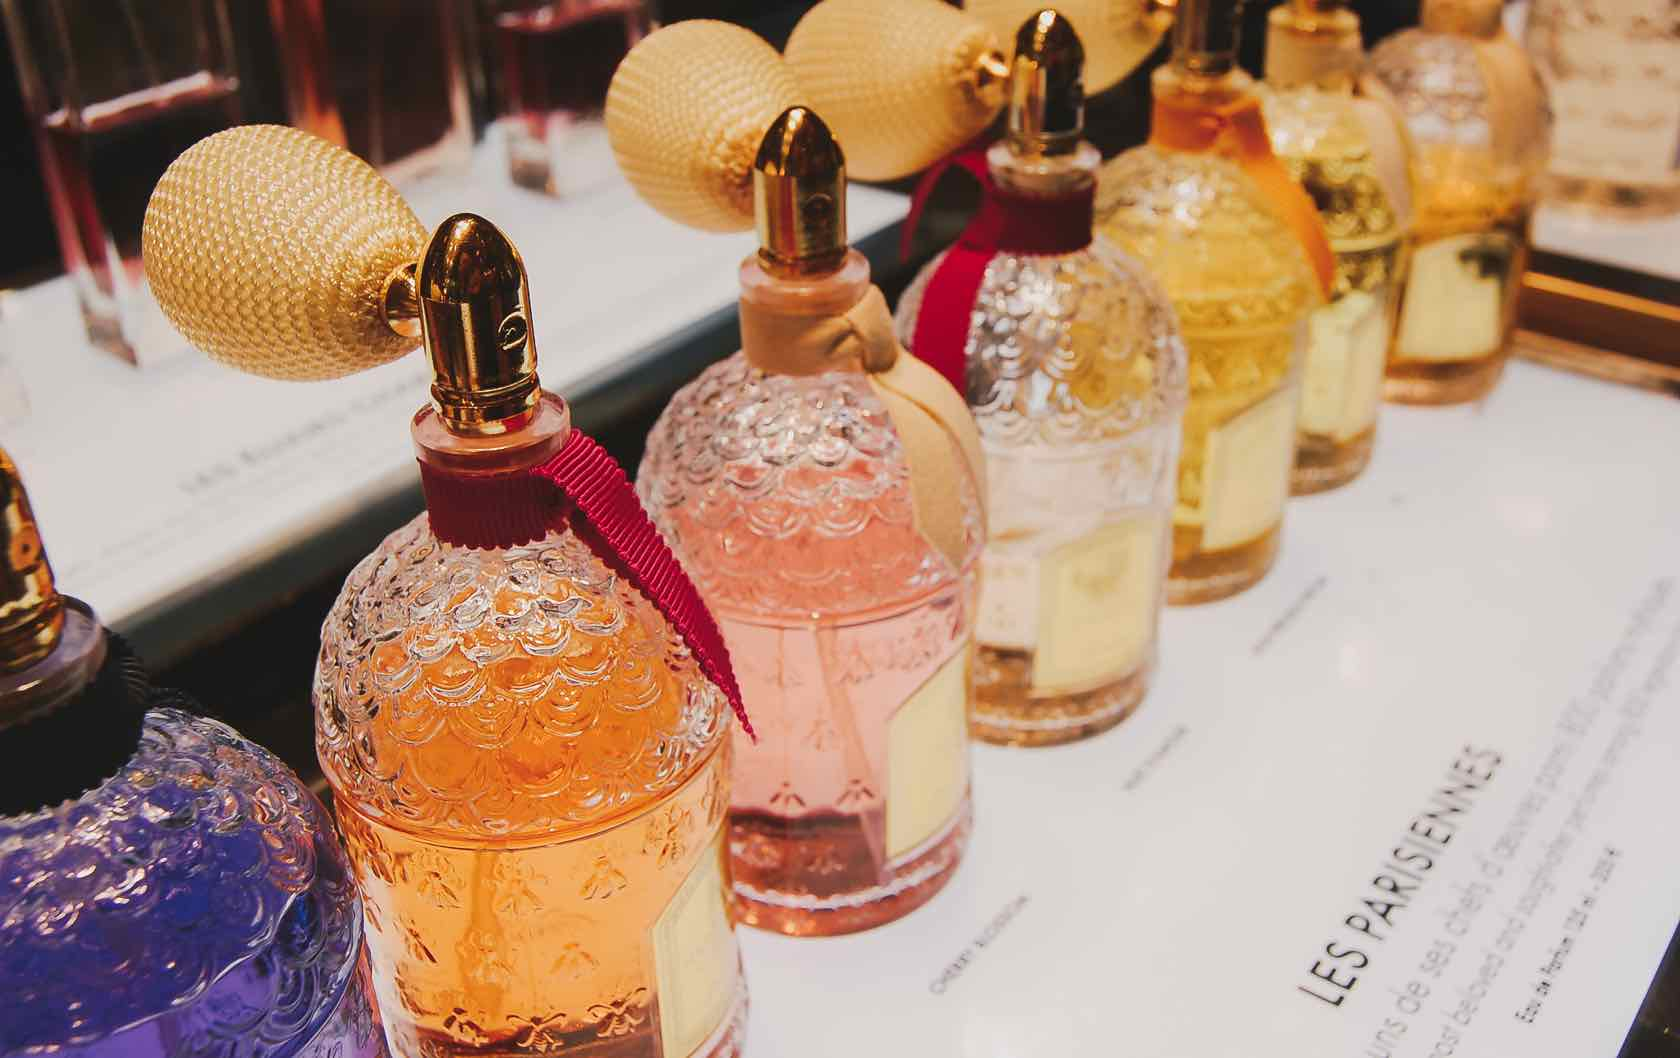 Fragrant Souvenirs: Buy these Bespoke Perfumes in Paris